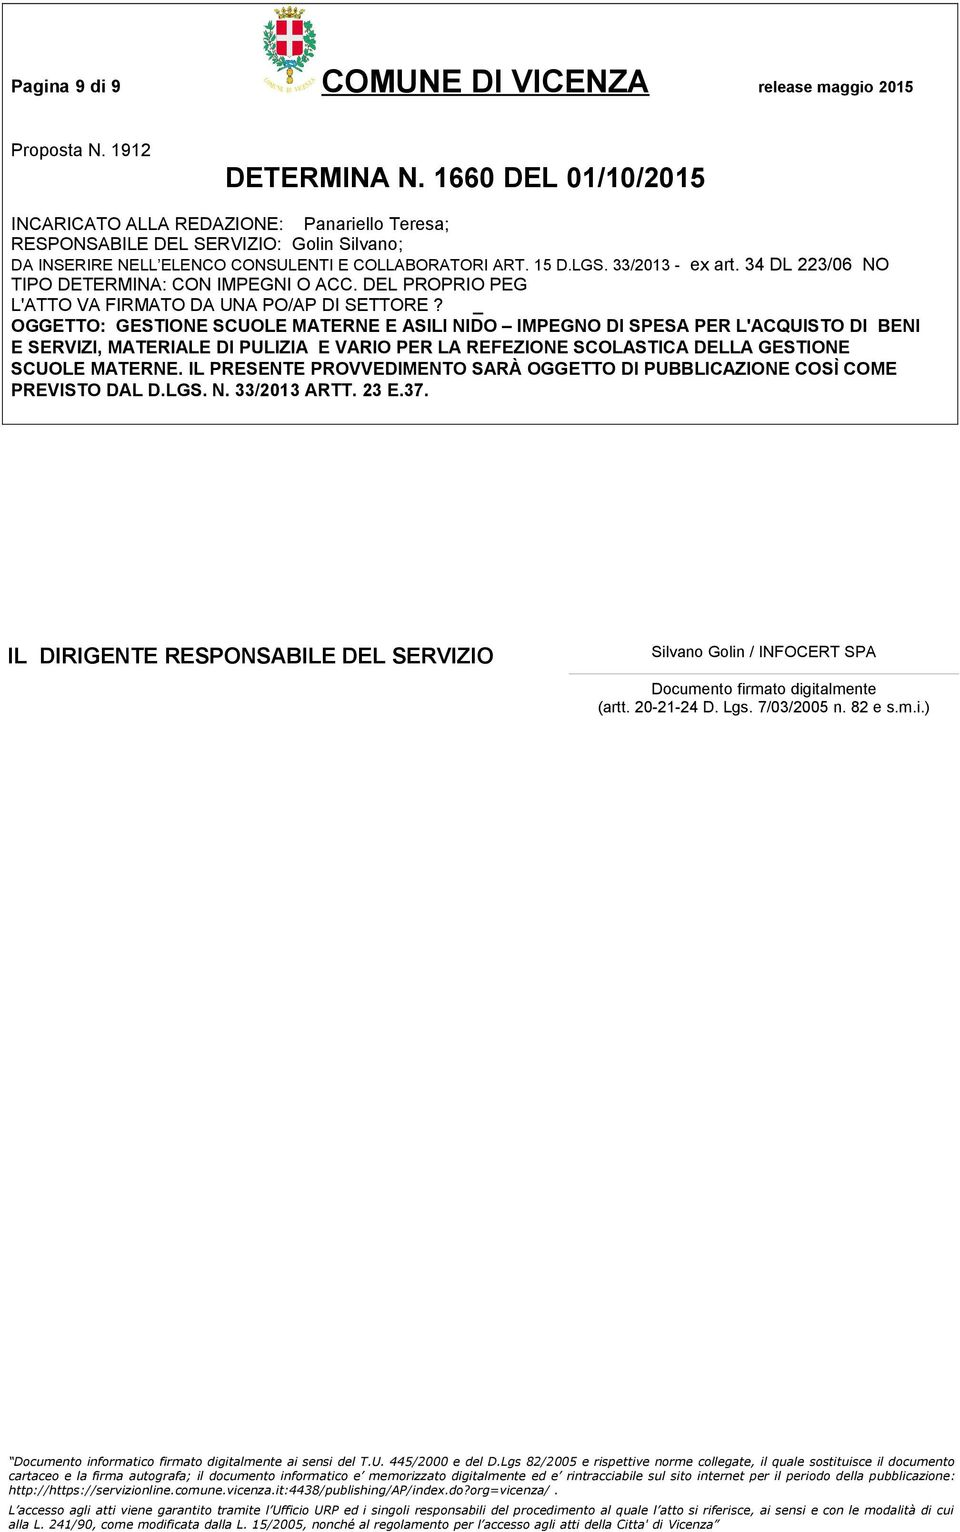 Silvano Golin / INFOCERT SPA Documento firmato